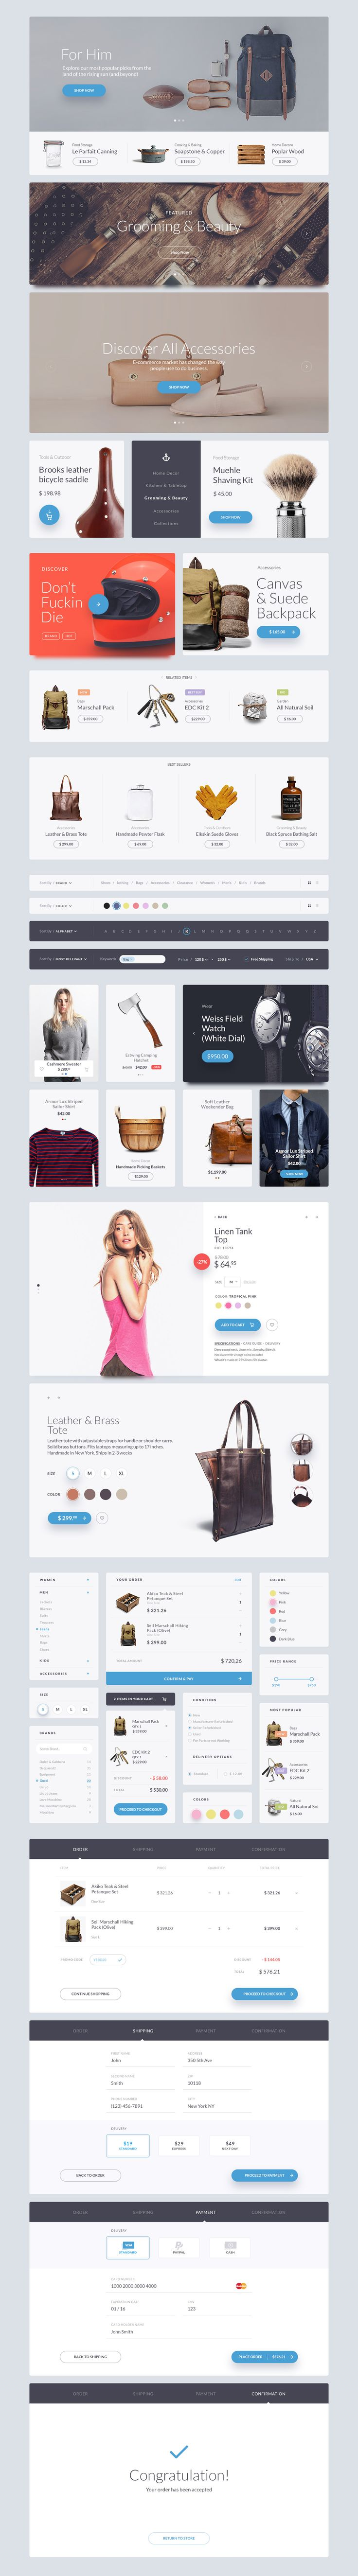 Kauf is a UI Web Kit crafted in Photoshop and designed for help you in your…